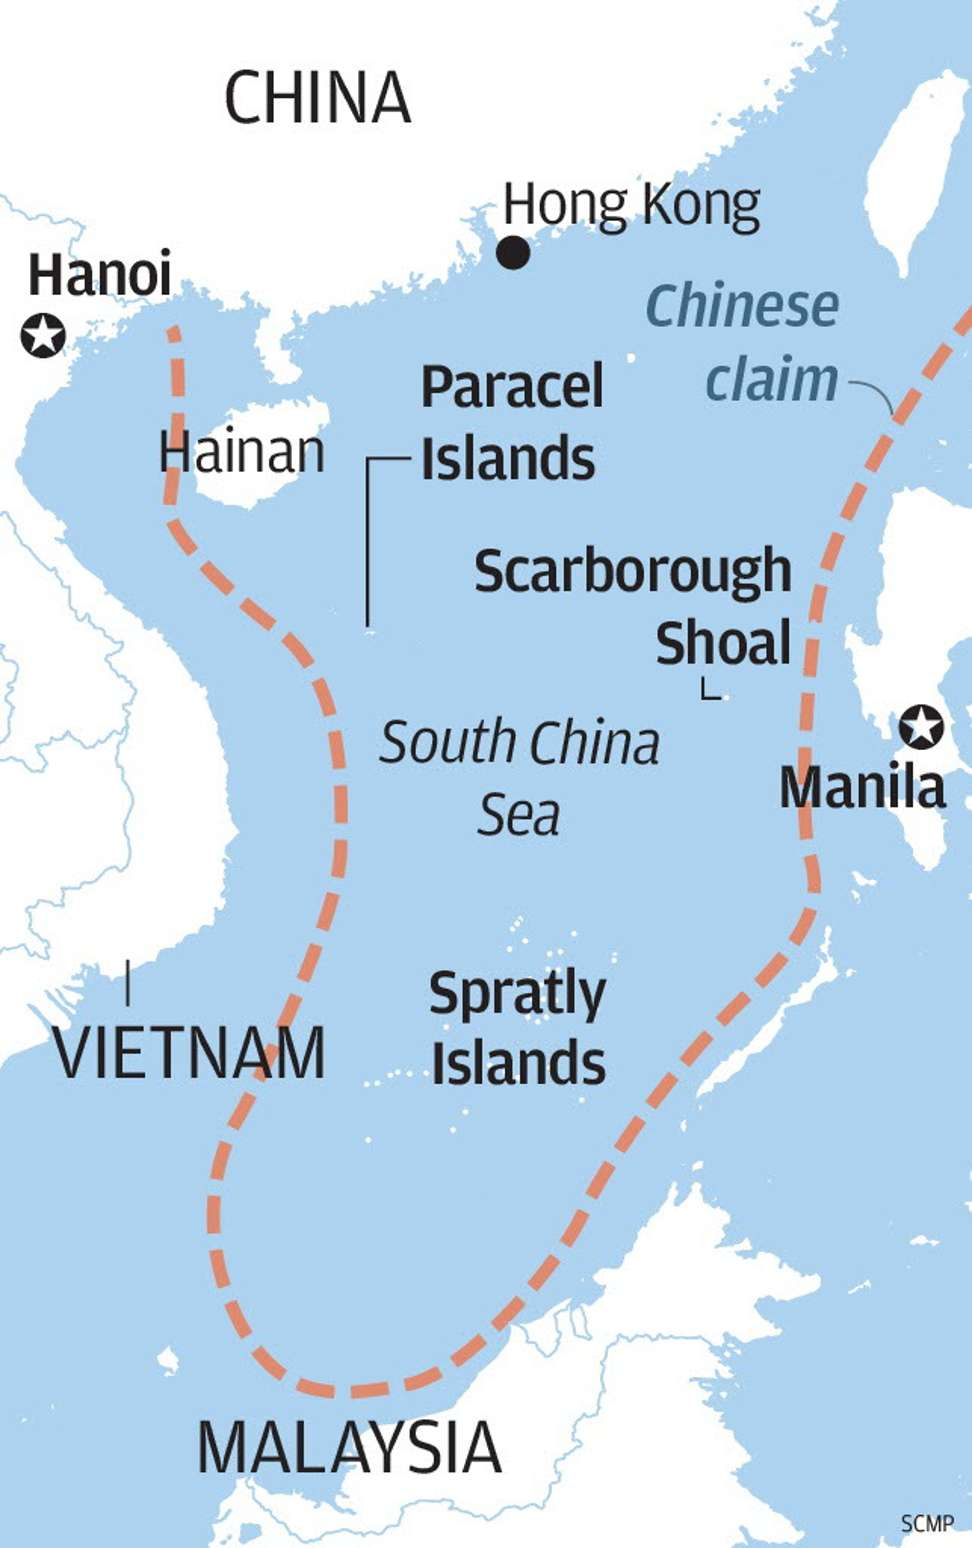 Duterte's defence chief signals Scarborough Shoal is off ... on south korea map, bataan map, pratas island map, south china sea, north korea map, swains island map, machias seal island map, nine-dotted line, pratas islands, spratly islands, north borneo map, bangladesh map, china map, south china sea islands, spratly islands dispute, cebu map, philippines map, masbate map, subic bay map, yongxing island map, paracel islands, macclesfield bank, senkaku islands dispute, senkaku islands, hans island map, mayotte map, itu aba island map, chagos archipelago map, mindoro map, matsu islands map,